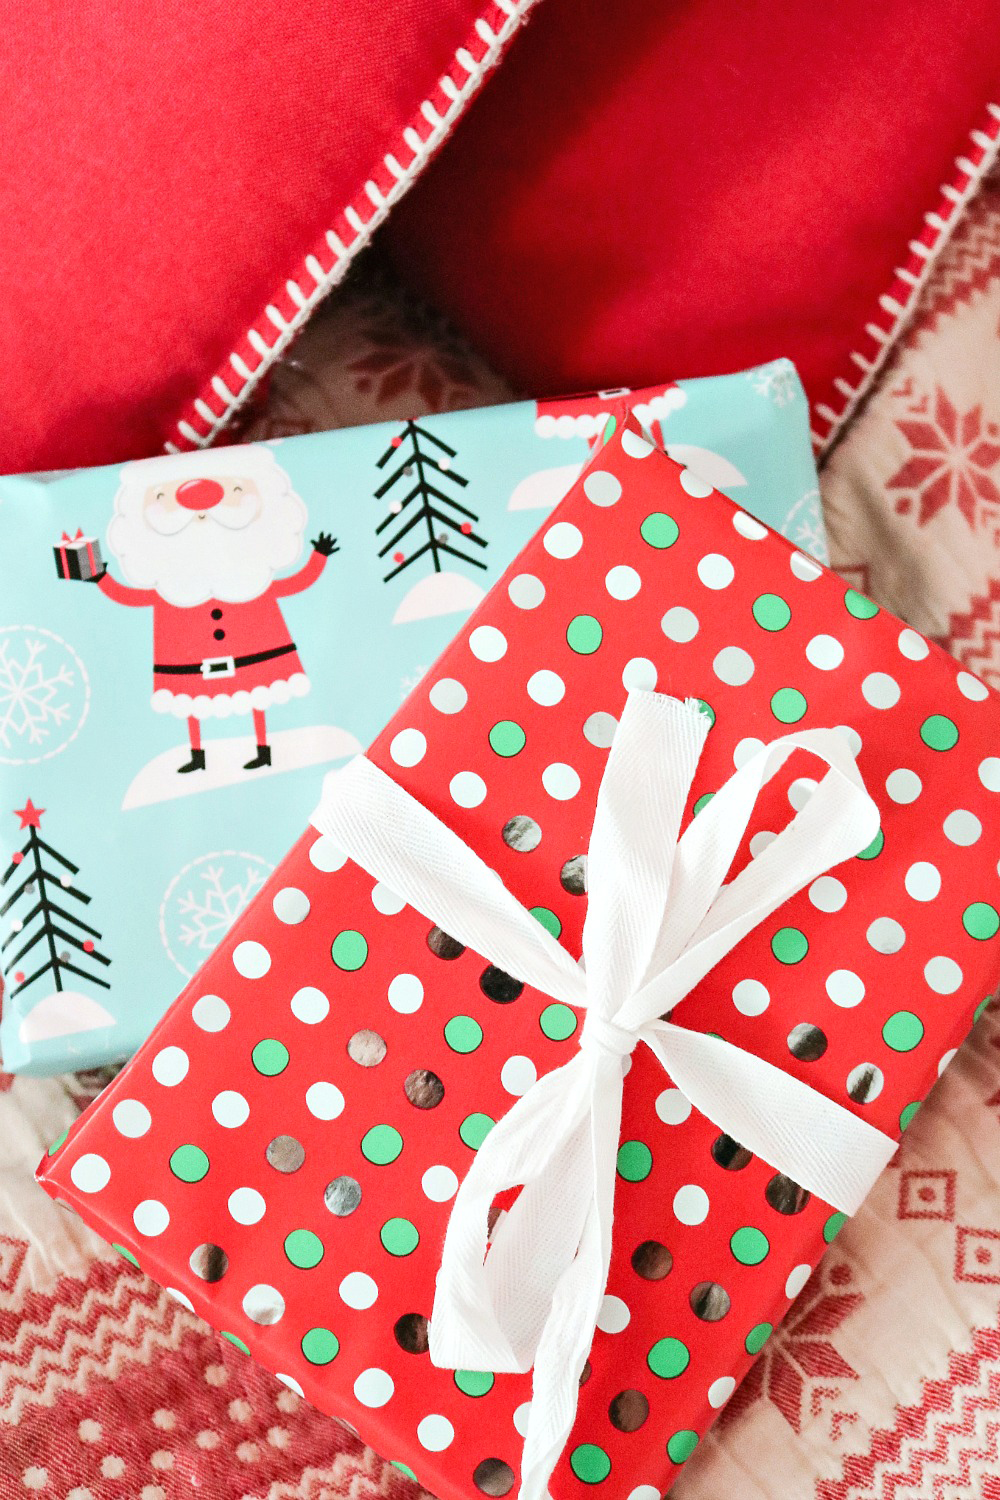 After Christmas Sales 2019 I Fashion and Beauty #shopping